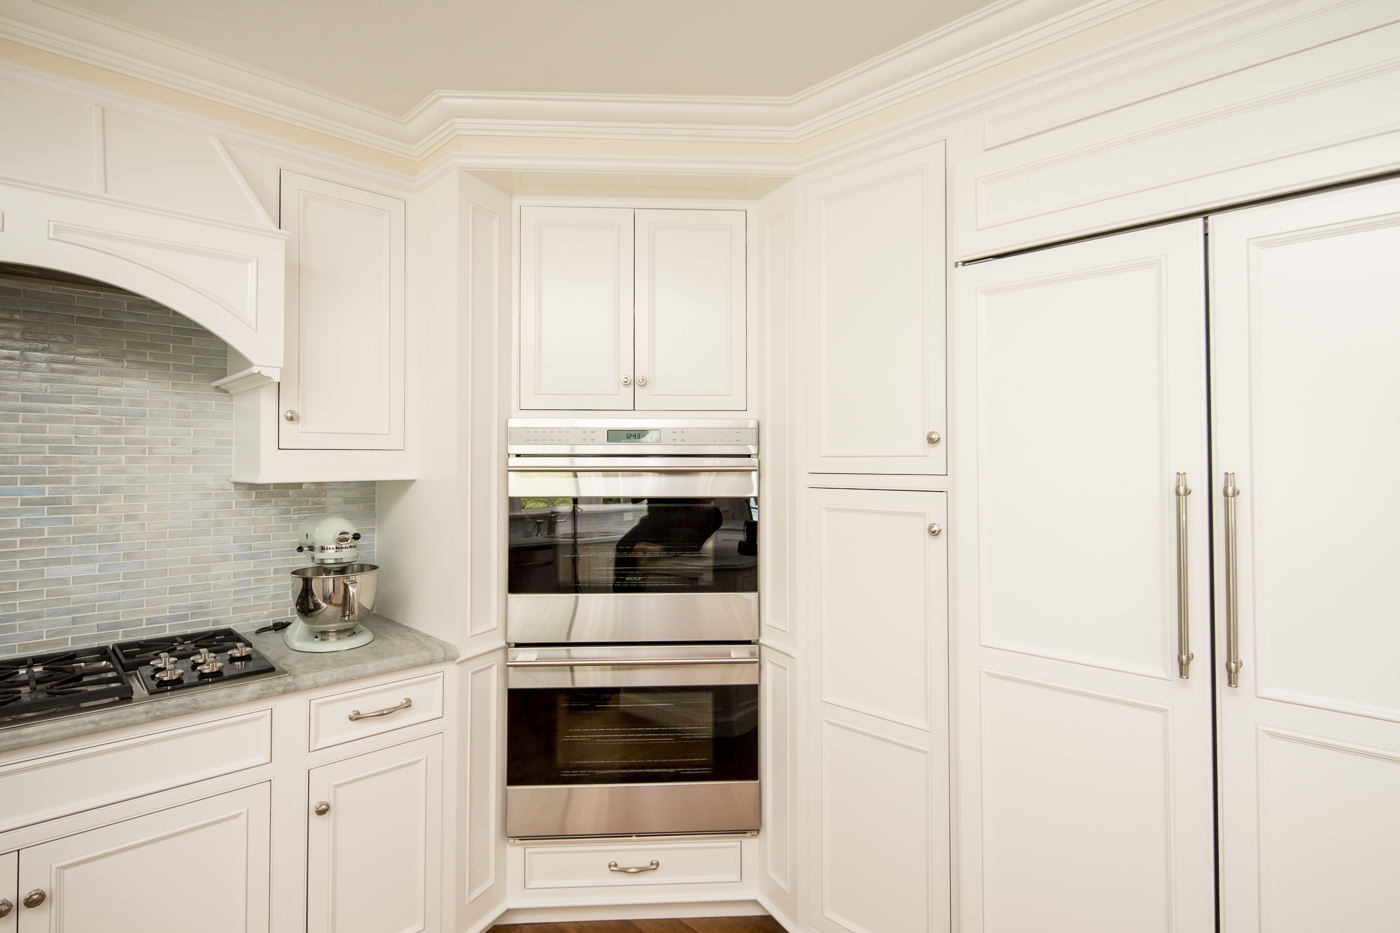 Kitchen Cabinet Stainless Steel Double Wall Oven